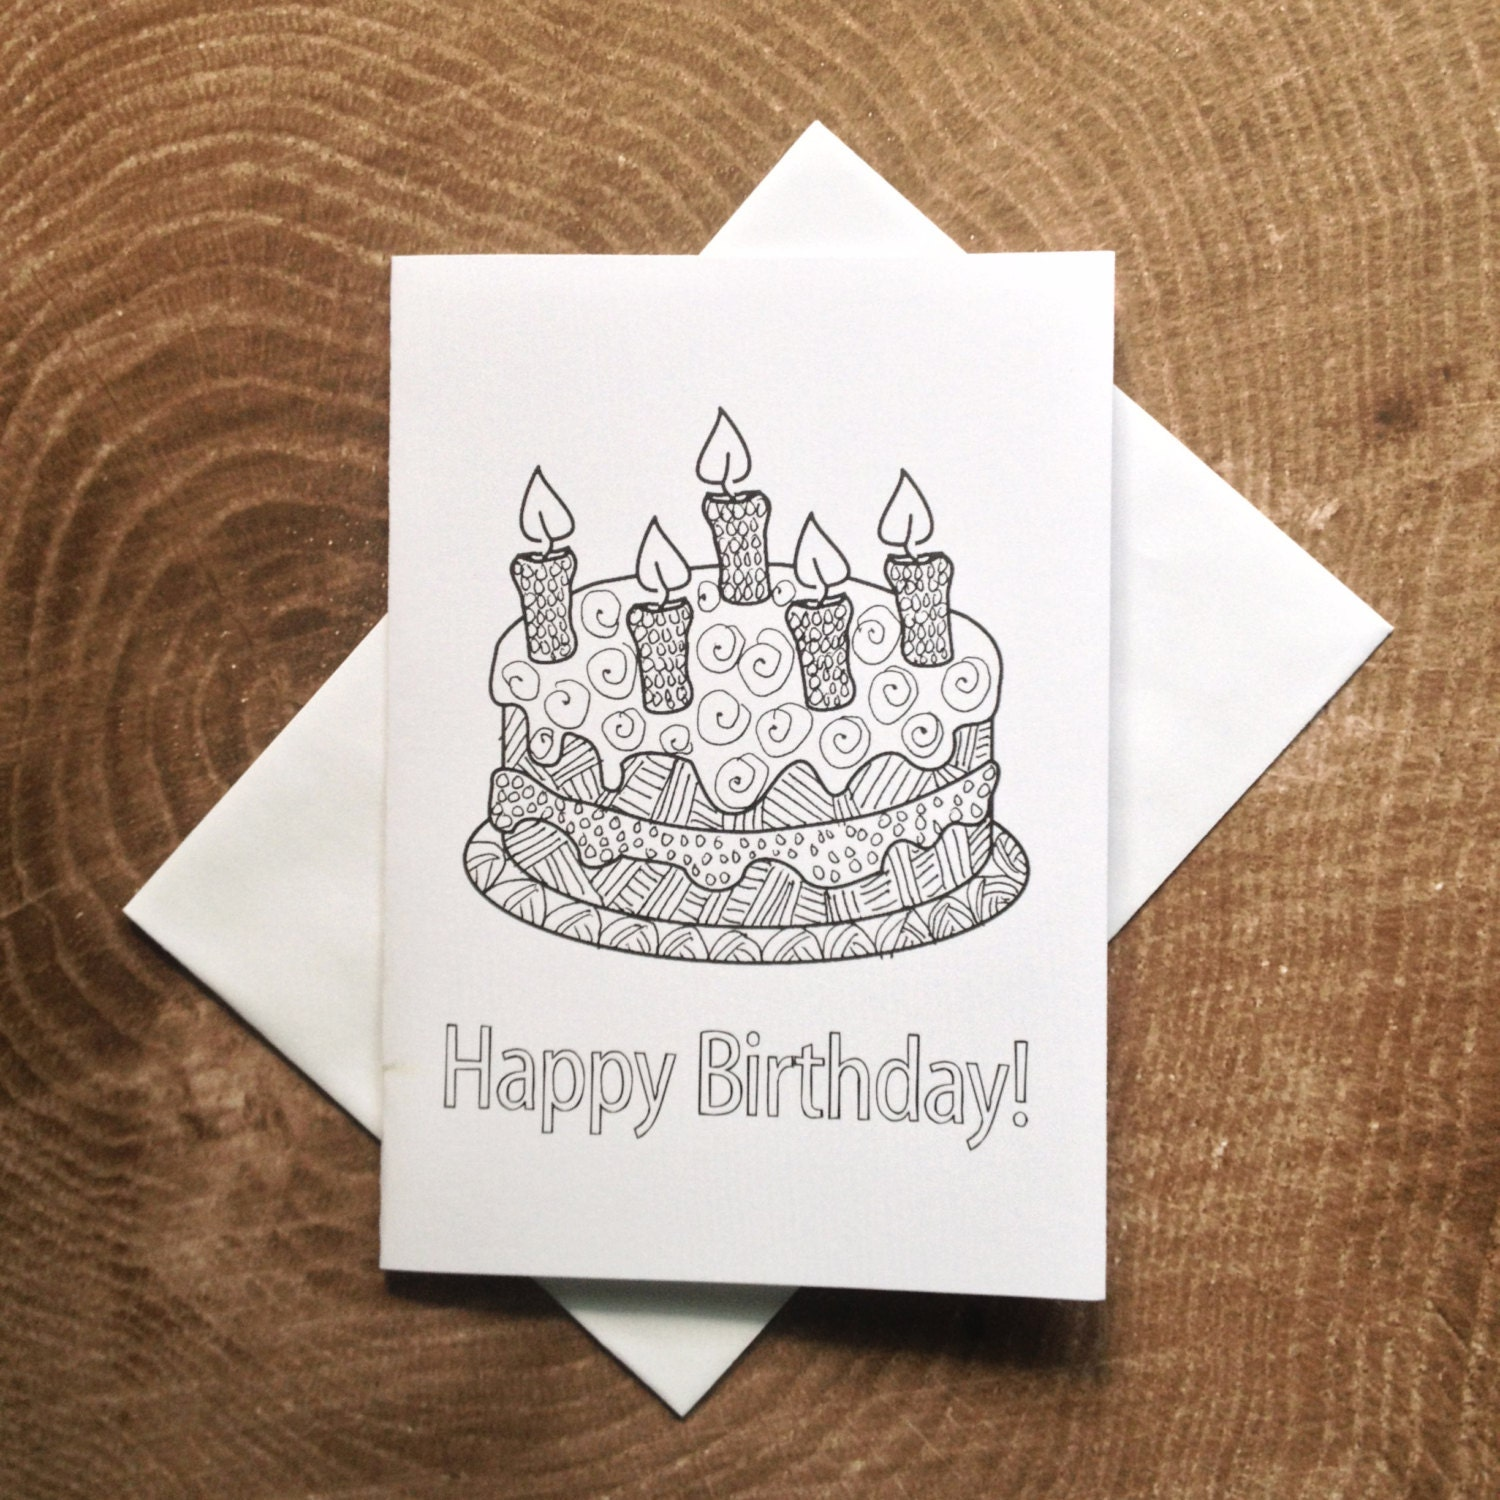 Birthday Cake Card: Kids Birthday Coloring Card Zentangle